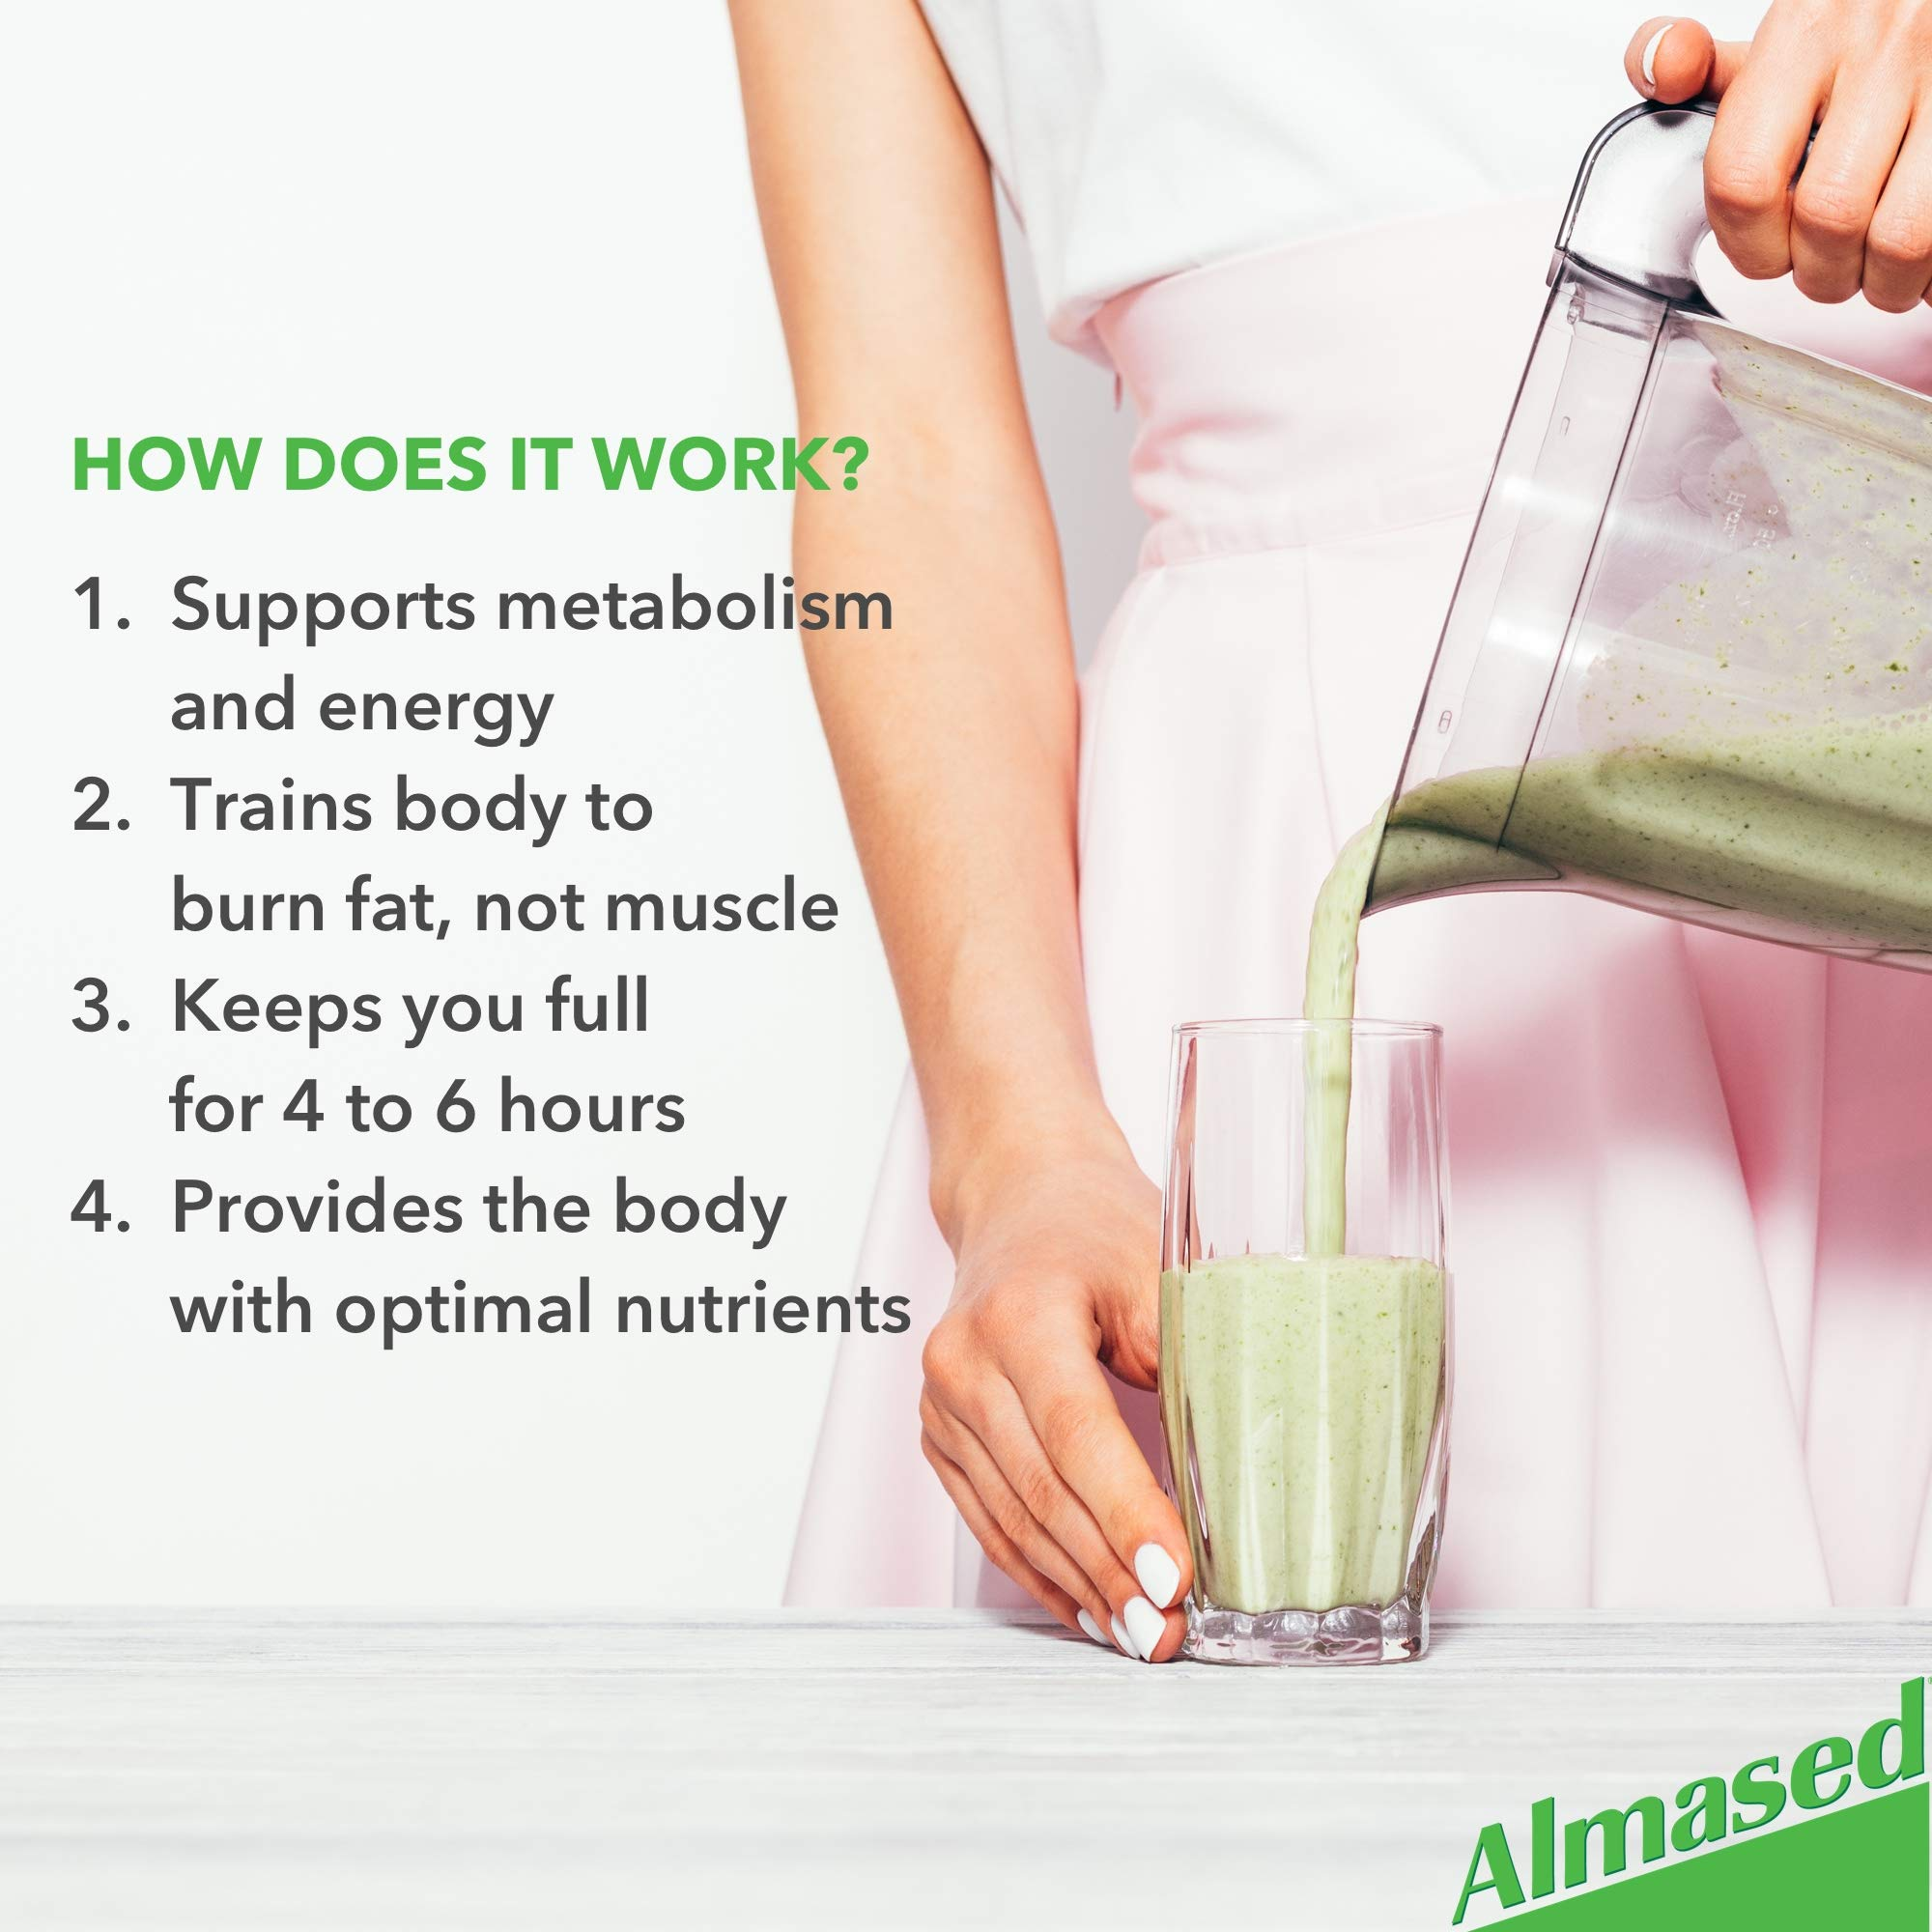 Almased Meal Replacement Shake (6 Pack) with Bonus Bamboo Spoon - 17.6 oz Powder - High Protein Weight Loss Drink, Fat Metabolism Booster - Vegetarian, Gluten Free - 60 Total Servings by Almased (Image #4)